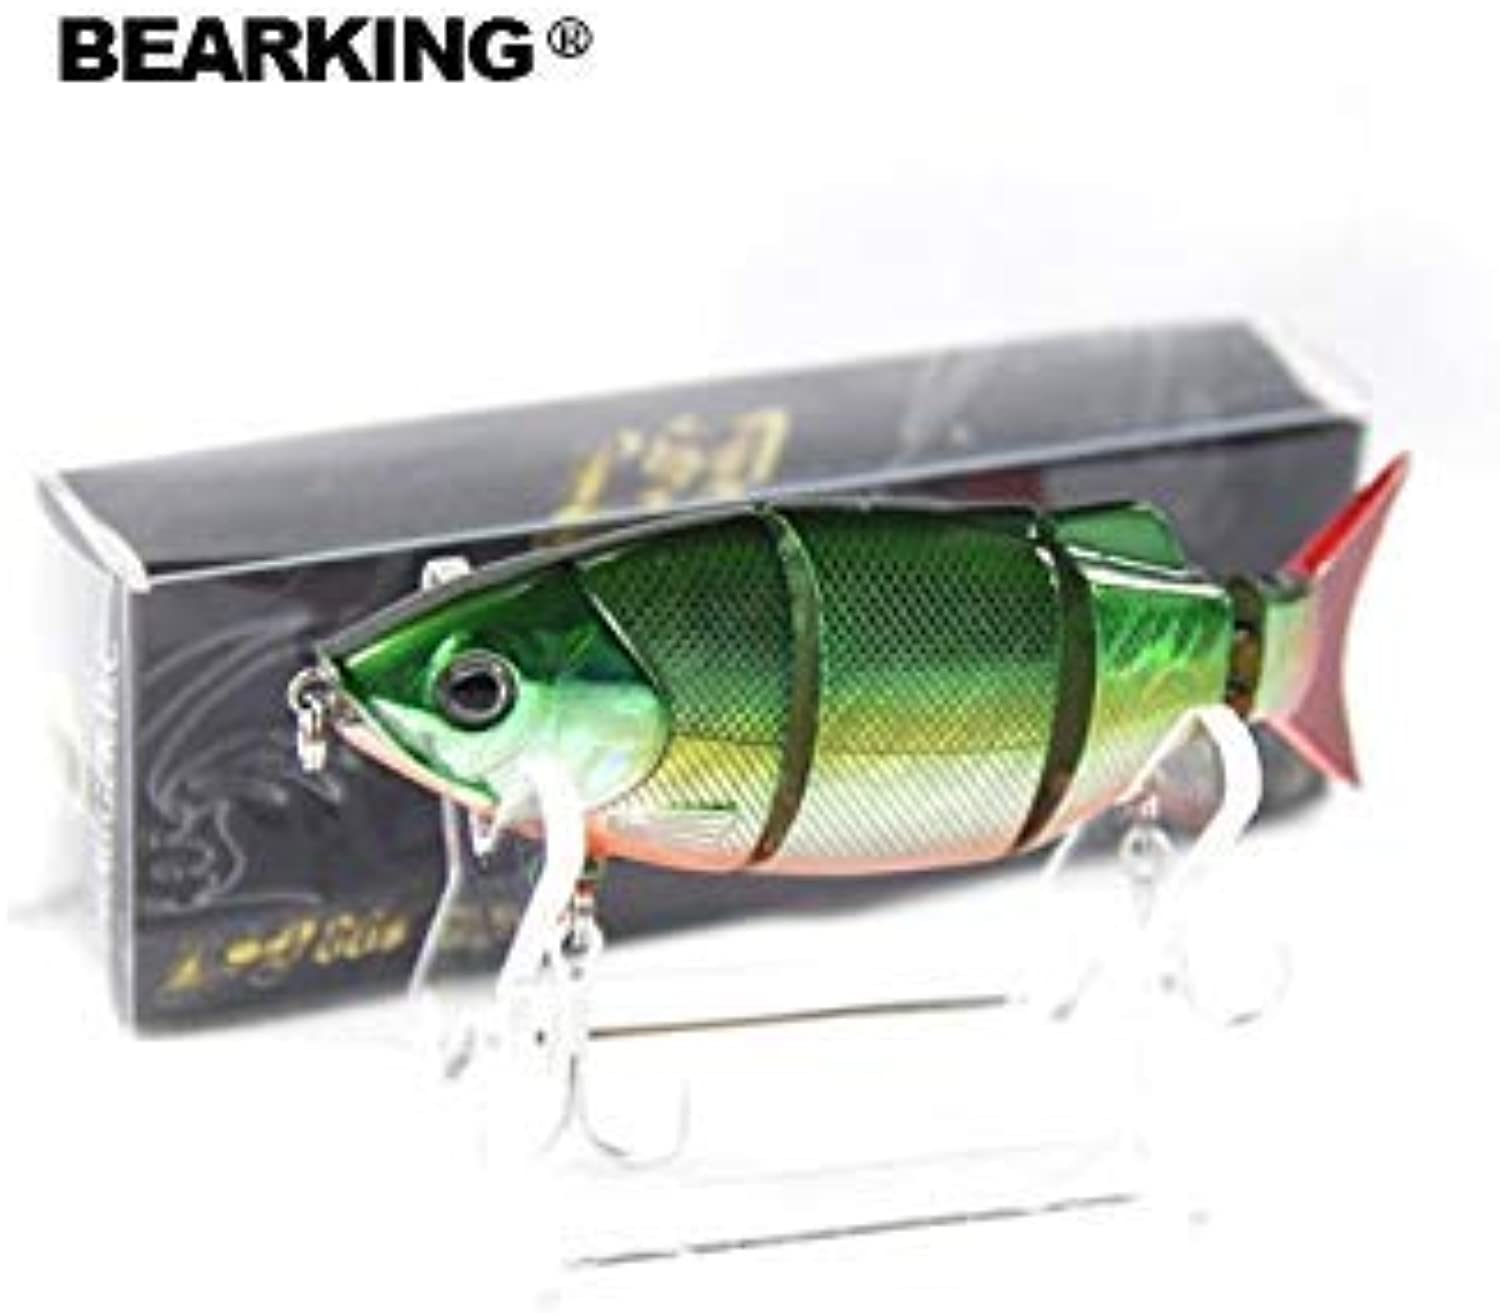 A+ top quty Fishing Lures, 80mm 10g swimbait, Bear King Each lot 5pcs diffet colors